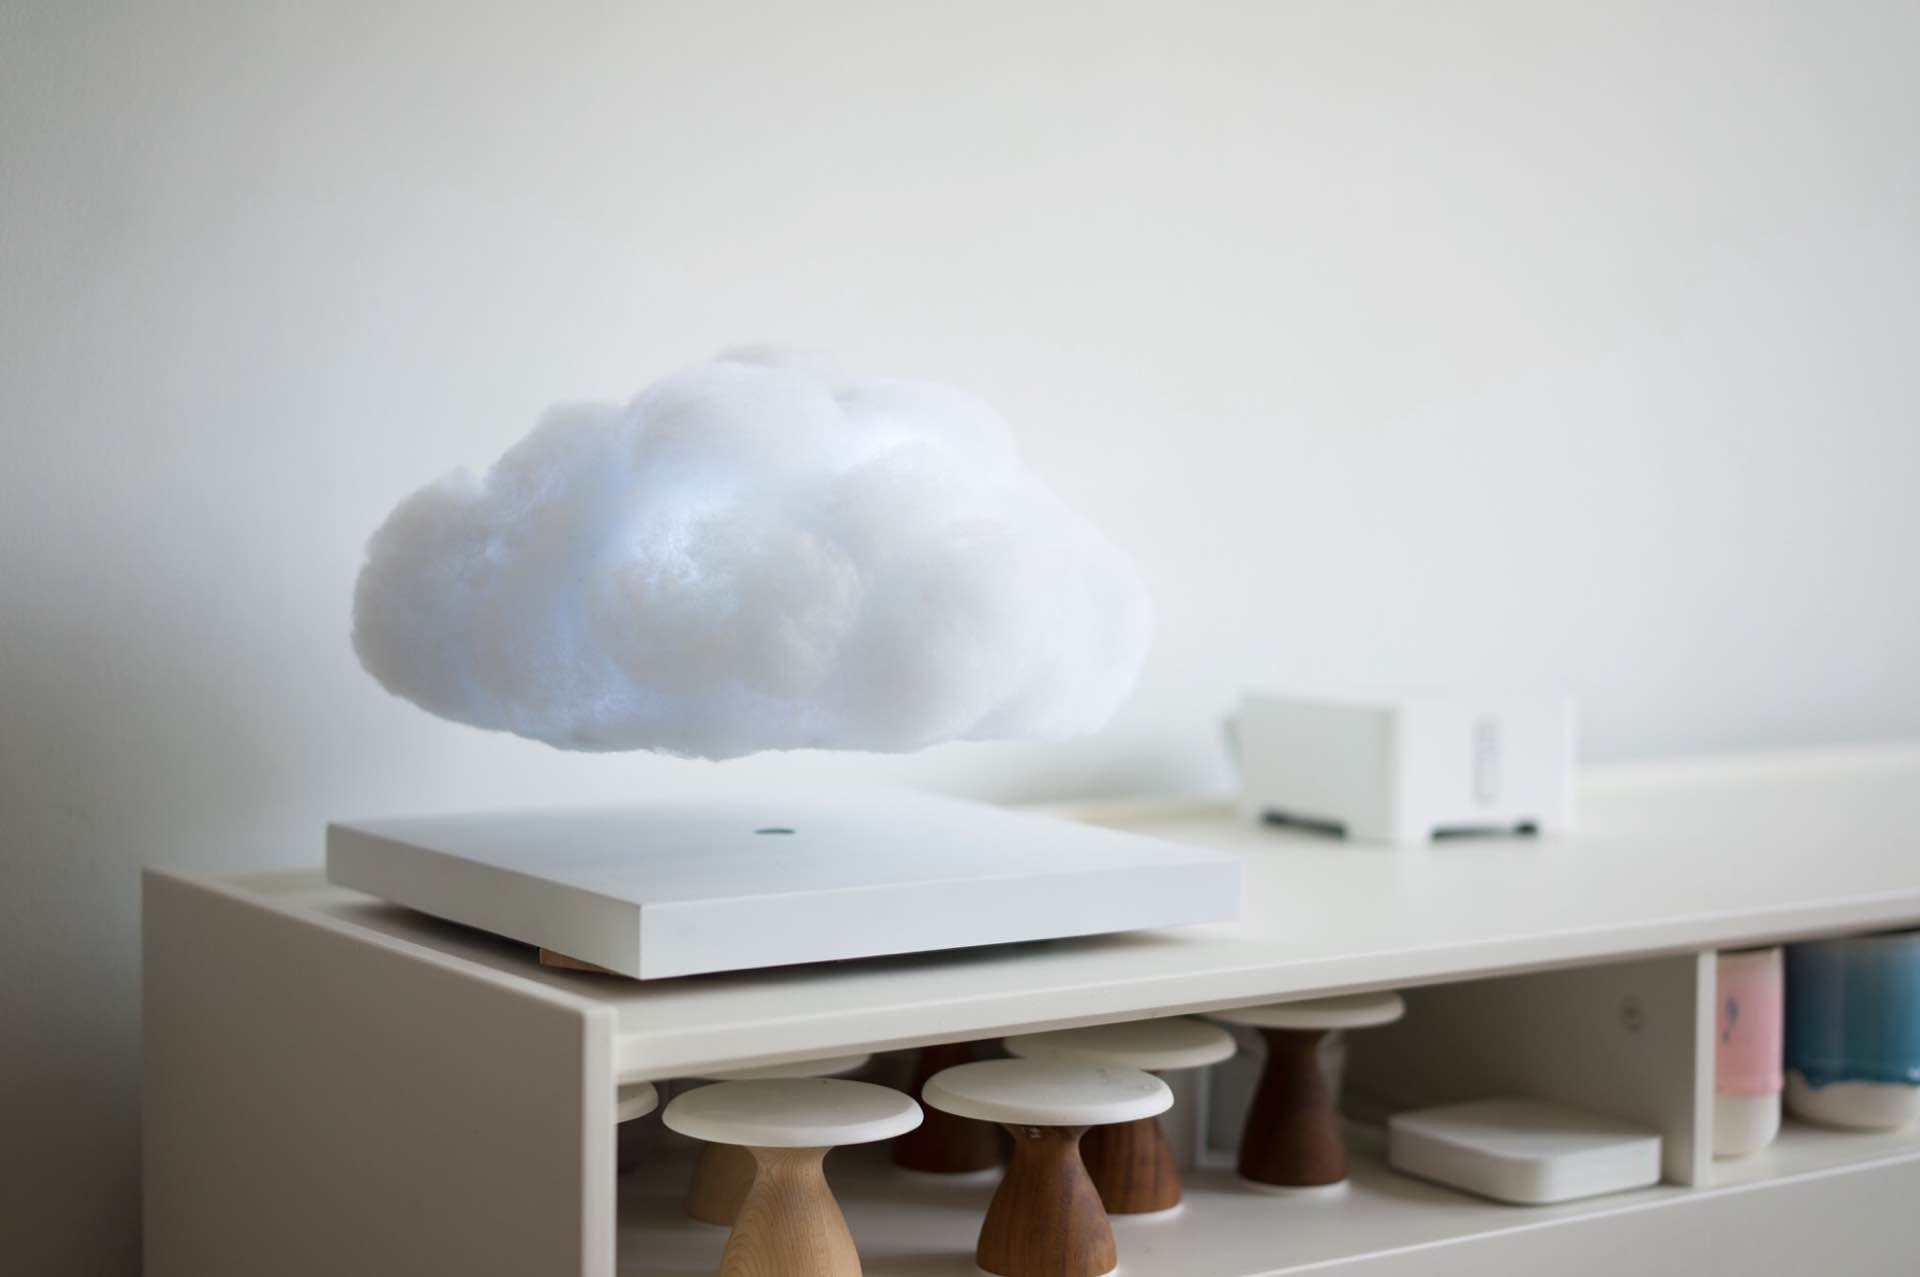 The Floating Cloud lamp by the Richard Clarkson Studio. ($4,620)